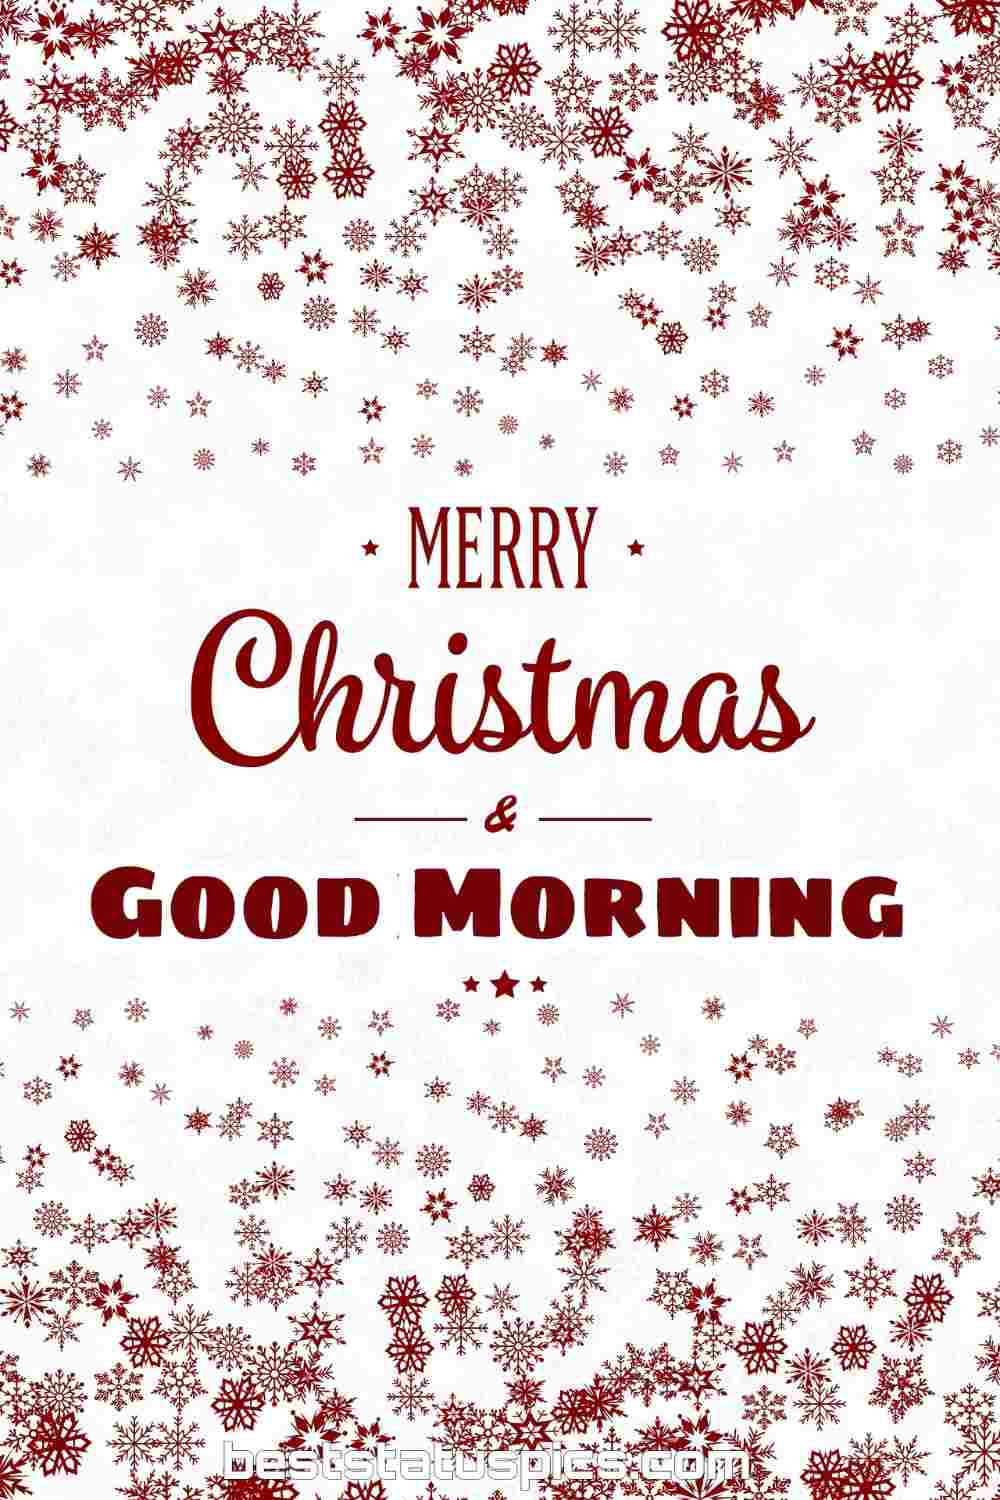 Good morning merry christmas eve 2022 greeting cards and ecard for Whatsapp DP